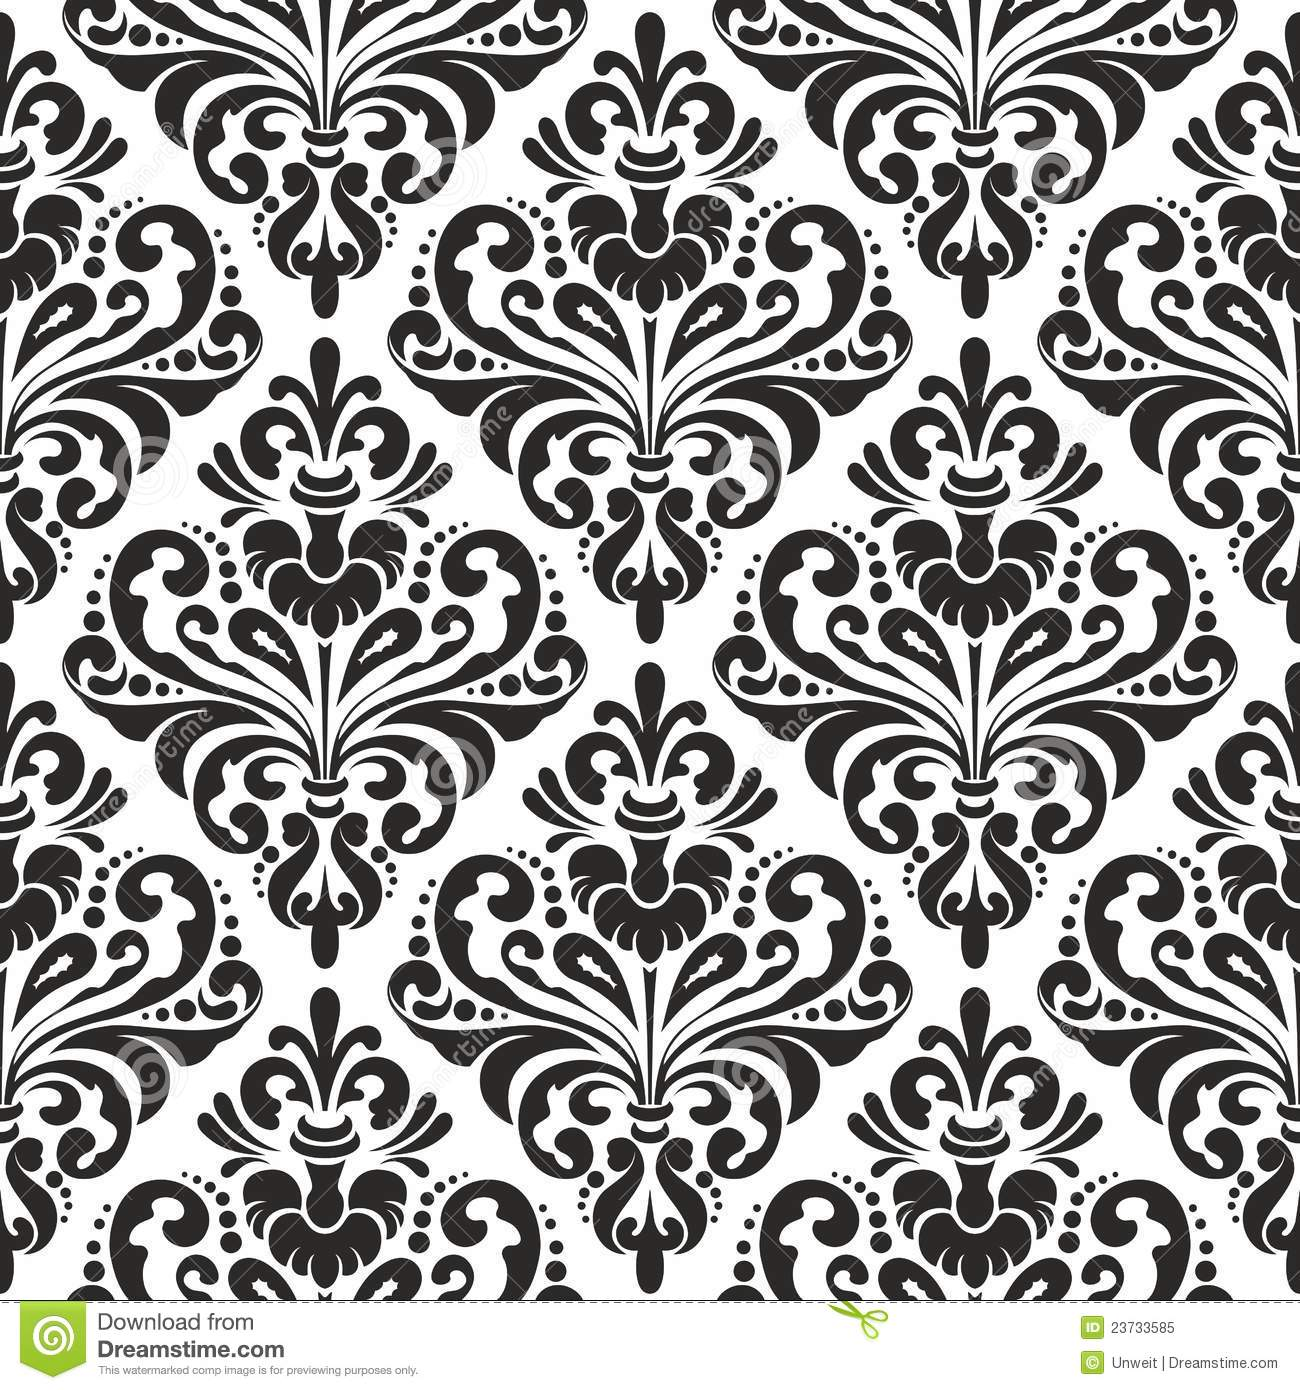 Floral Damask Wallpaper Stock Vector Illustration Of Seamless